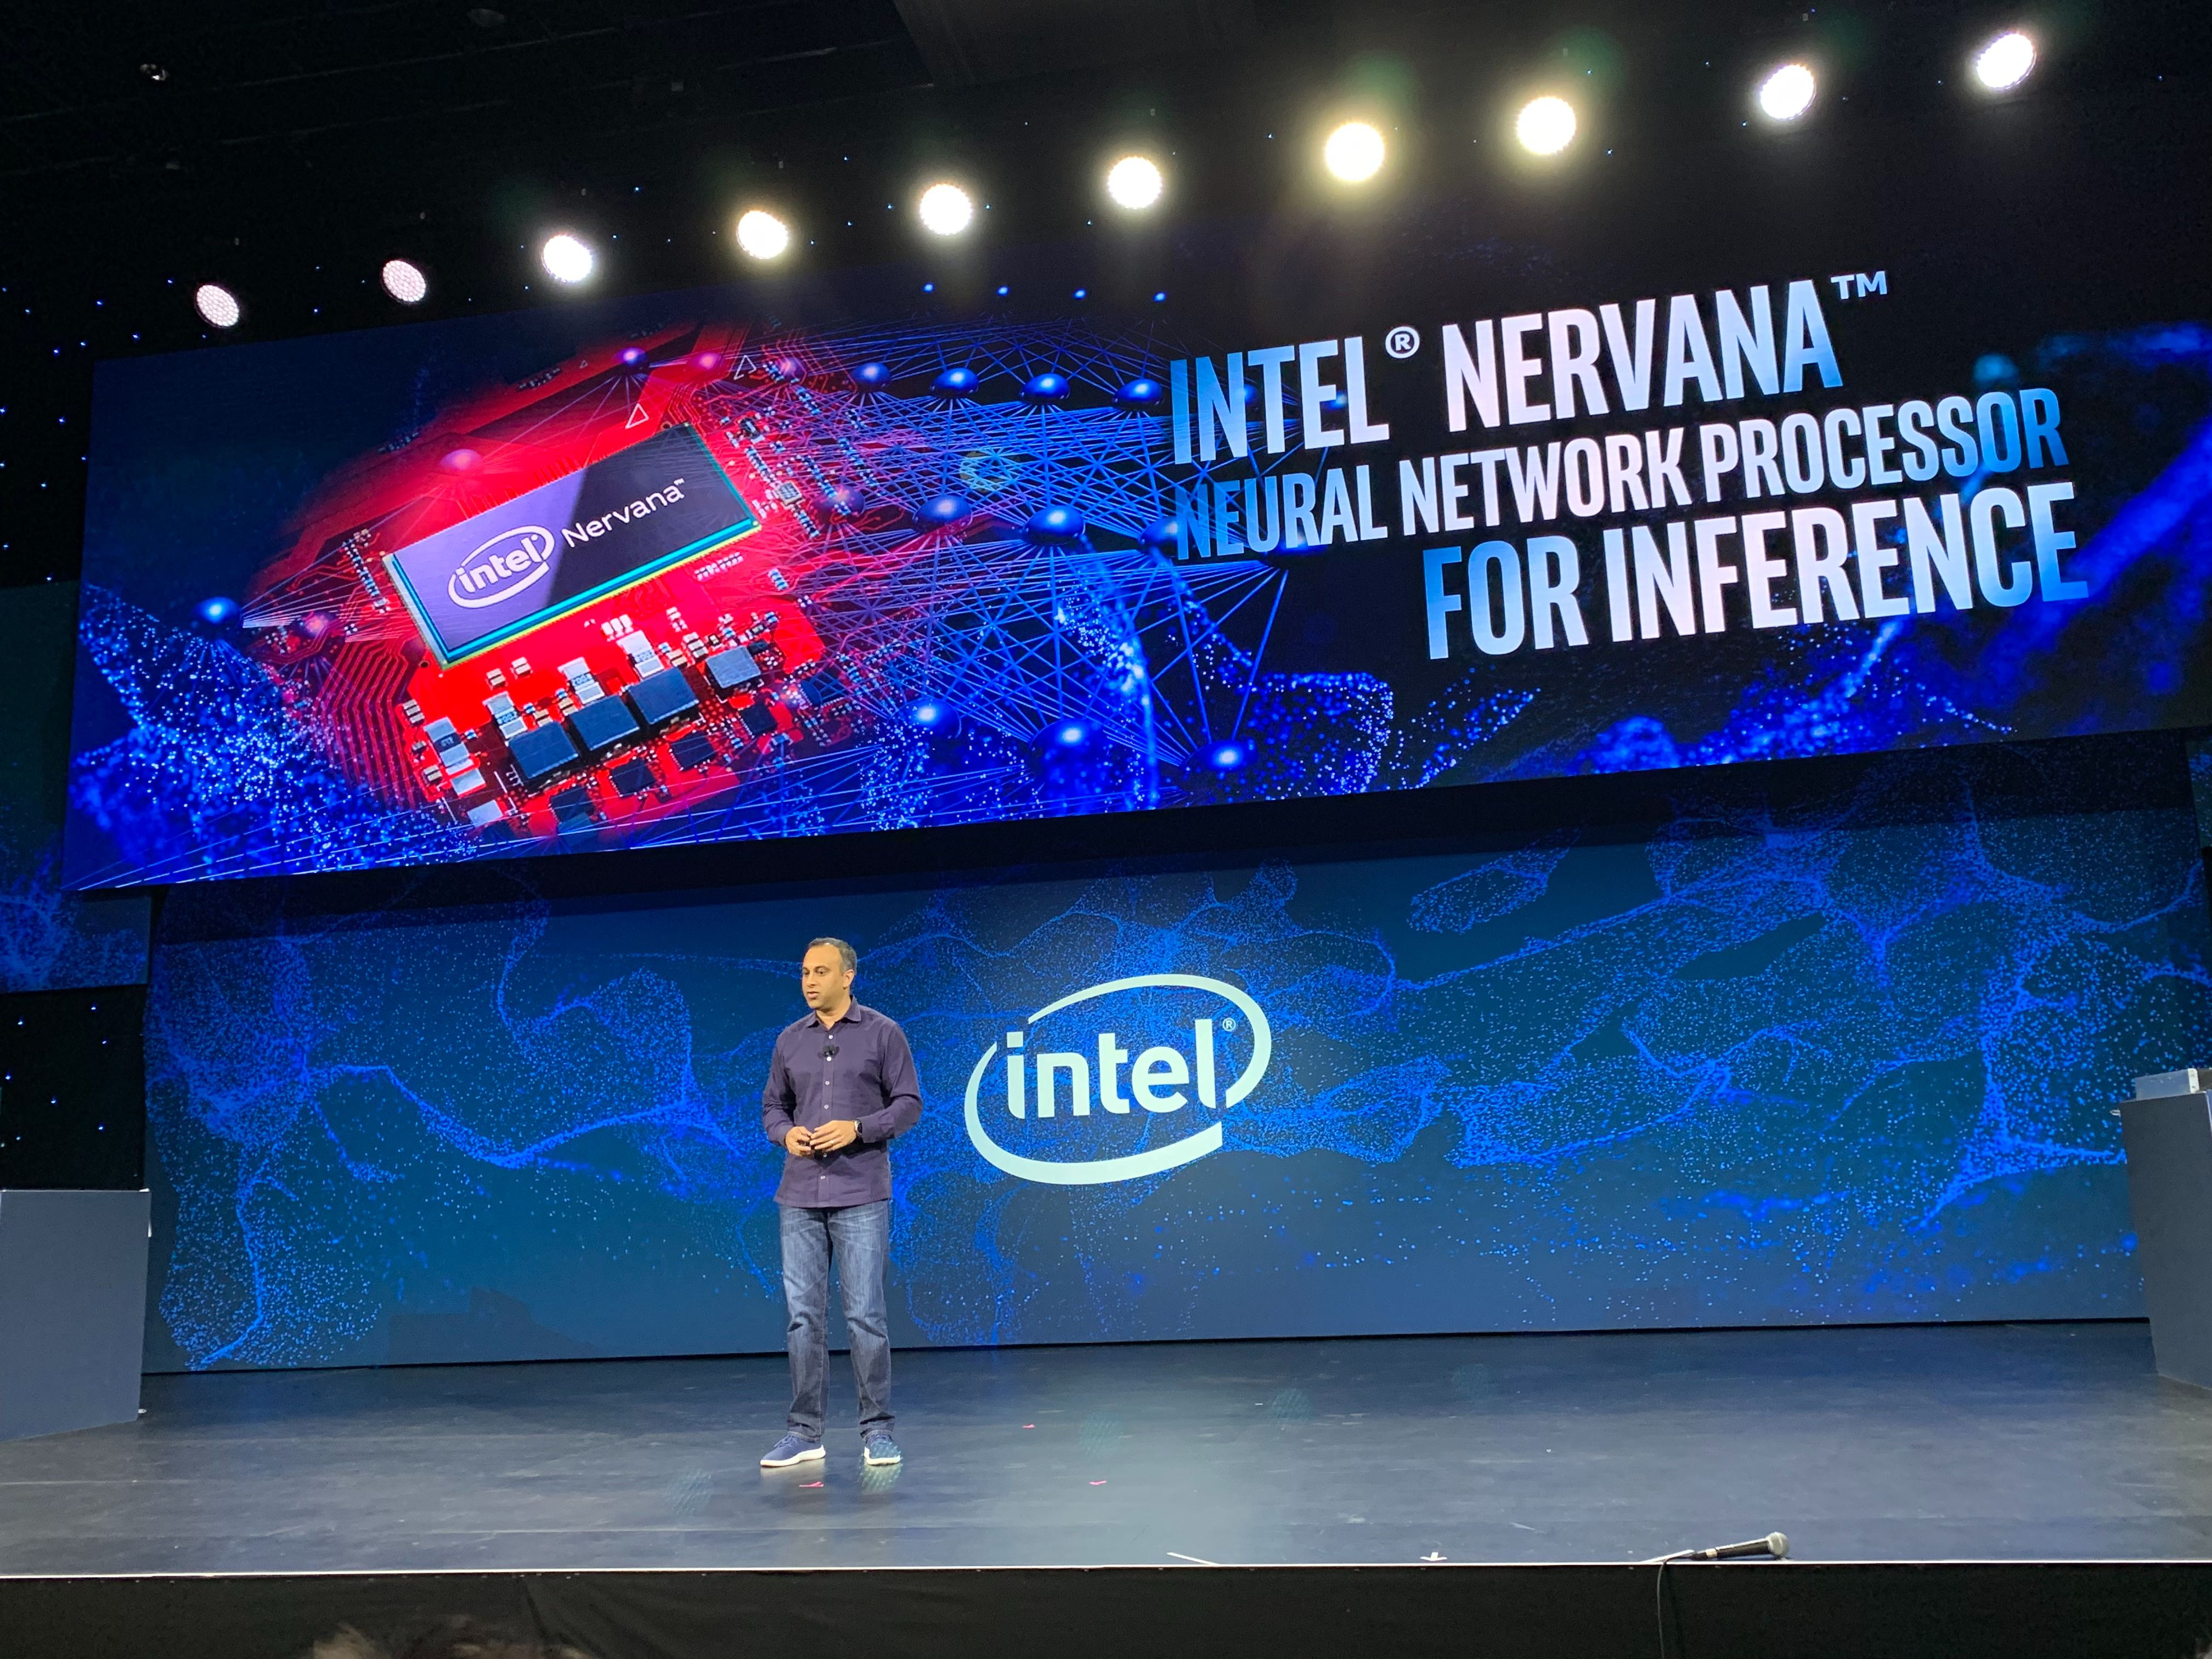 Intel details Nervana, a neural network chip for inference-based